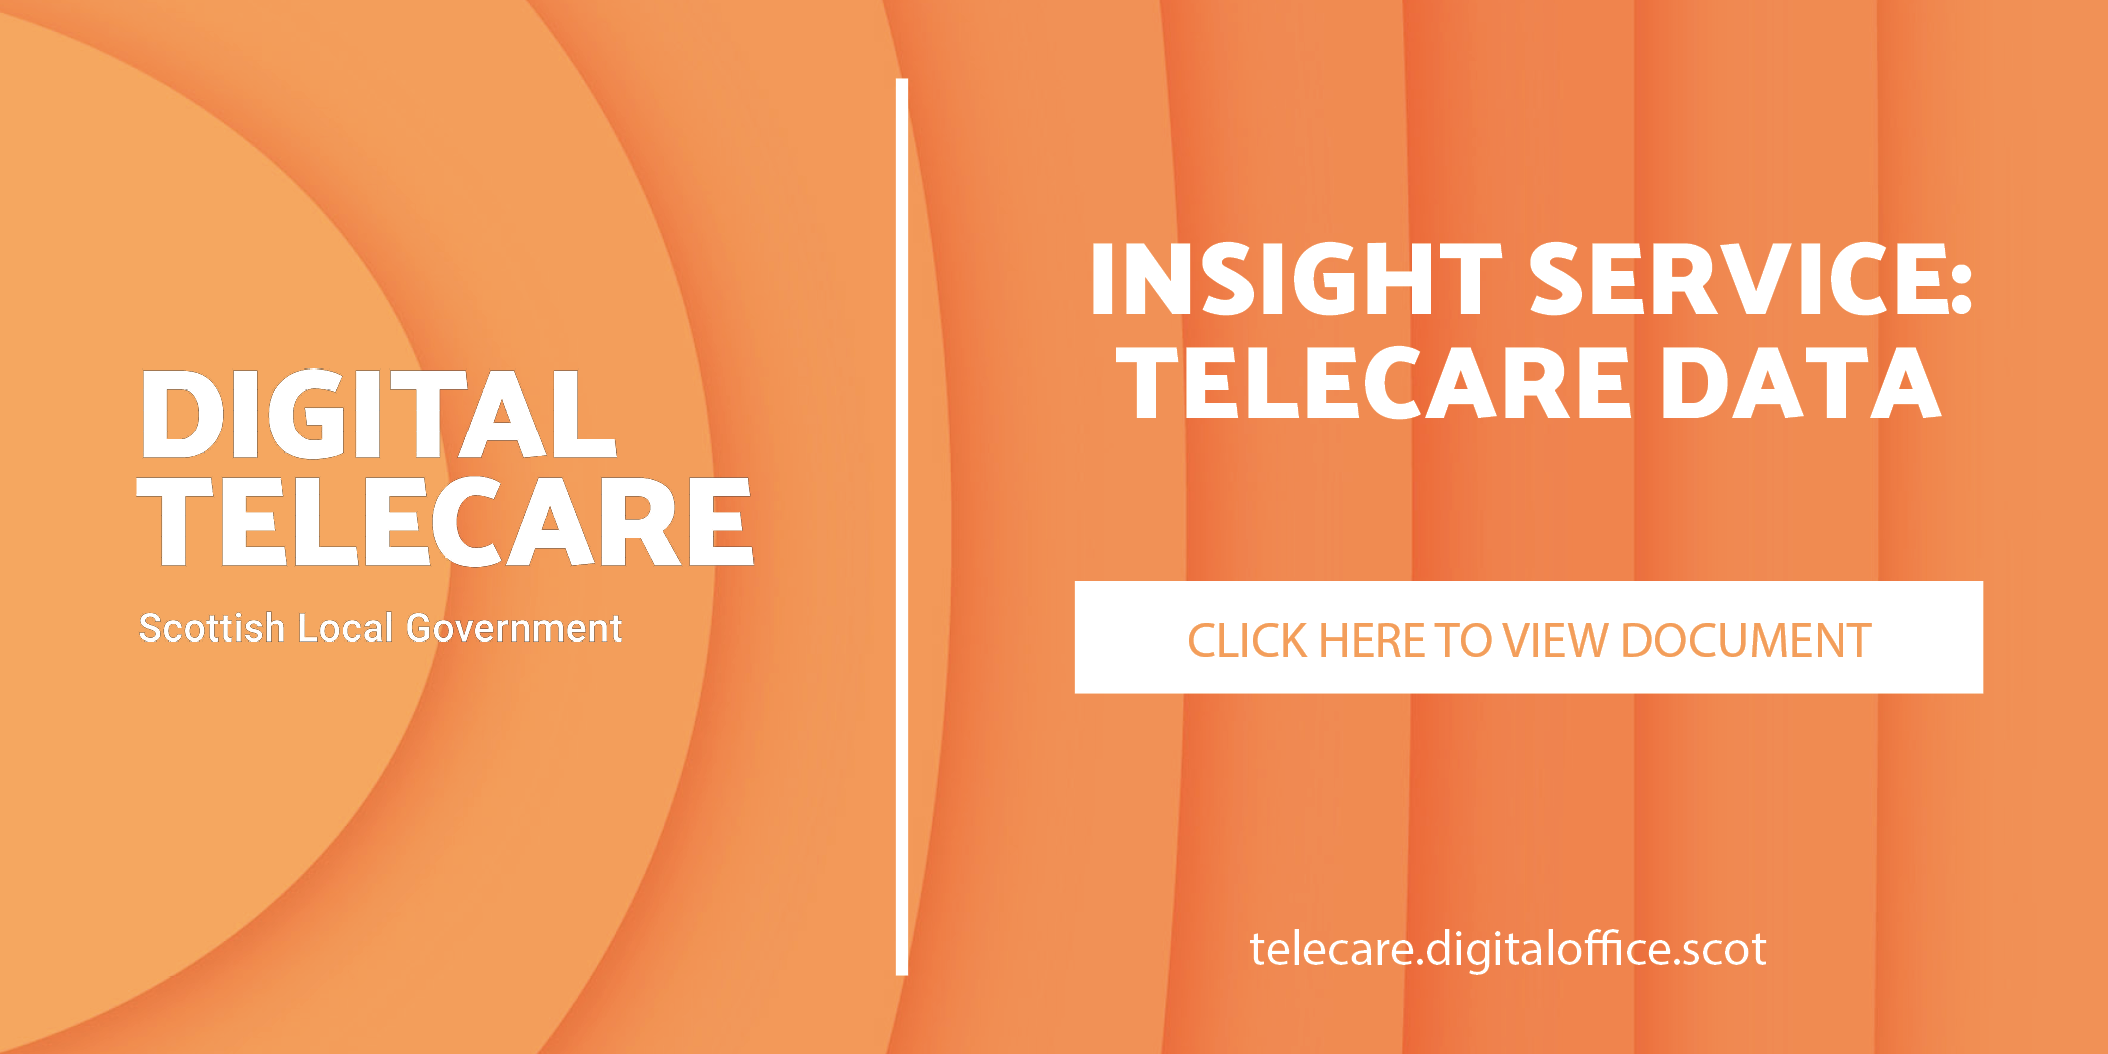 INSIGHT SERVICE: TELECARE DATA